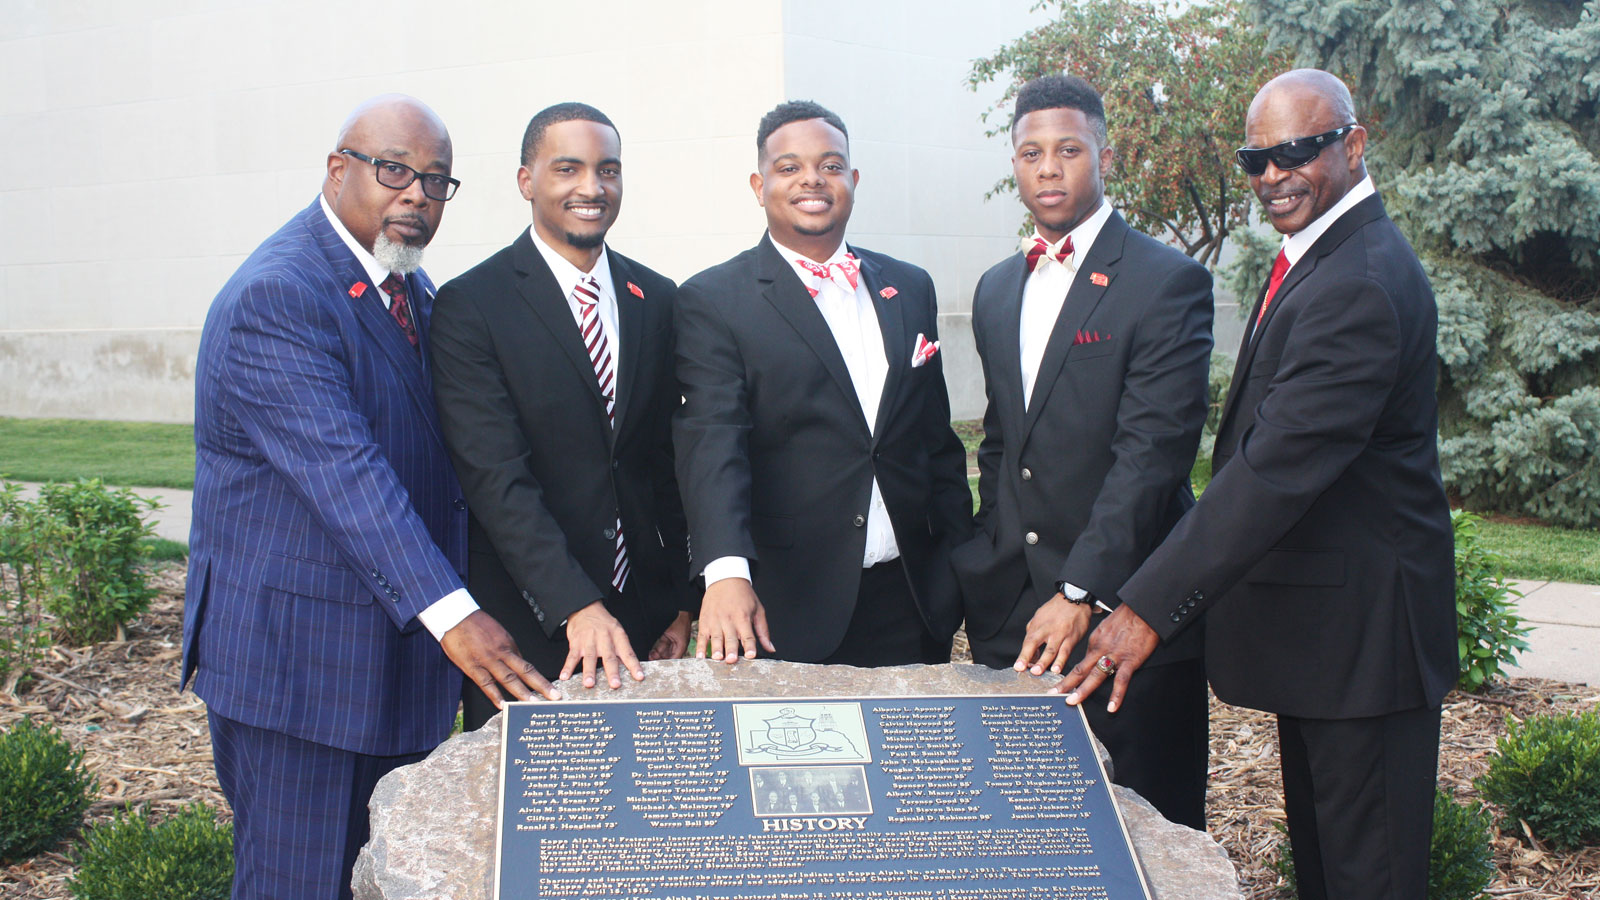 Members of Kappa Alpha Psi with new rock